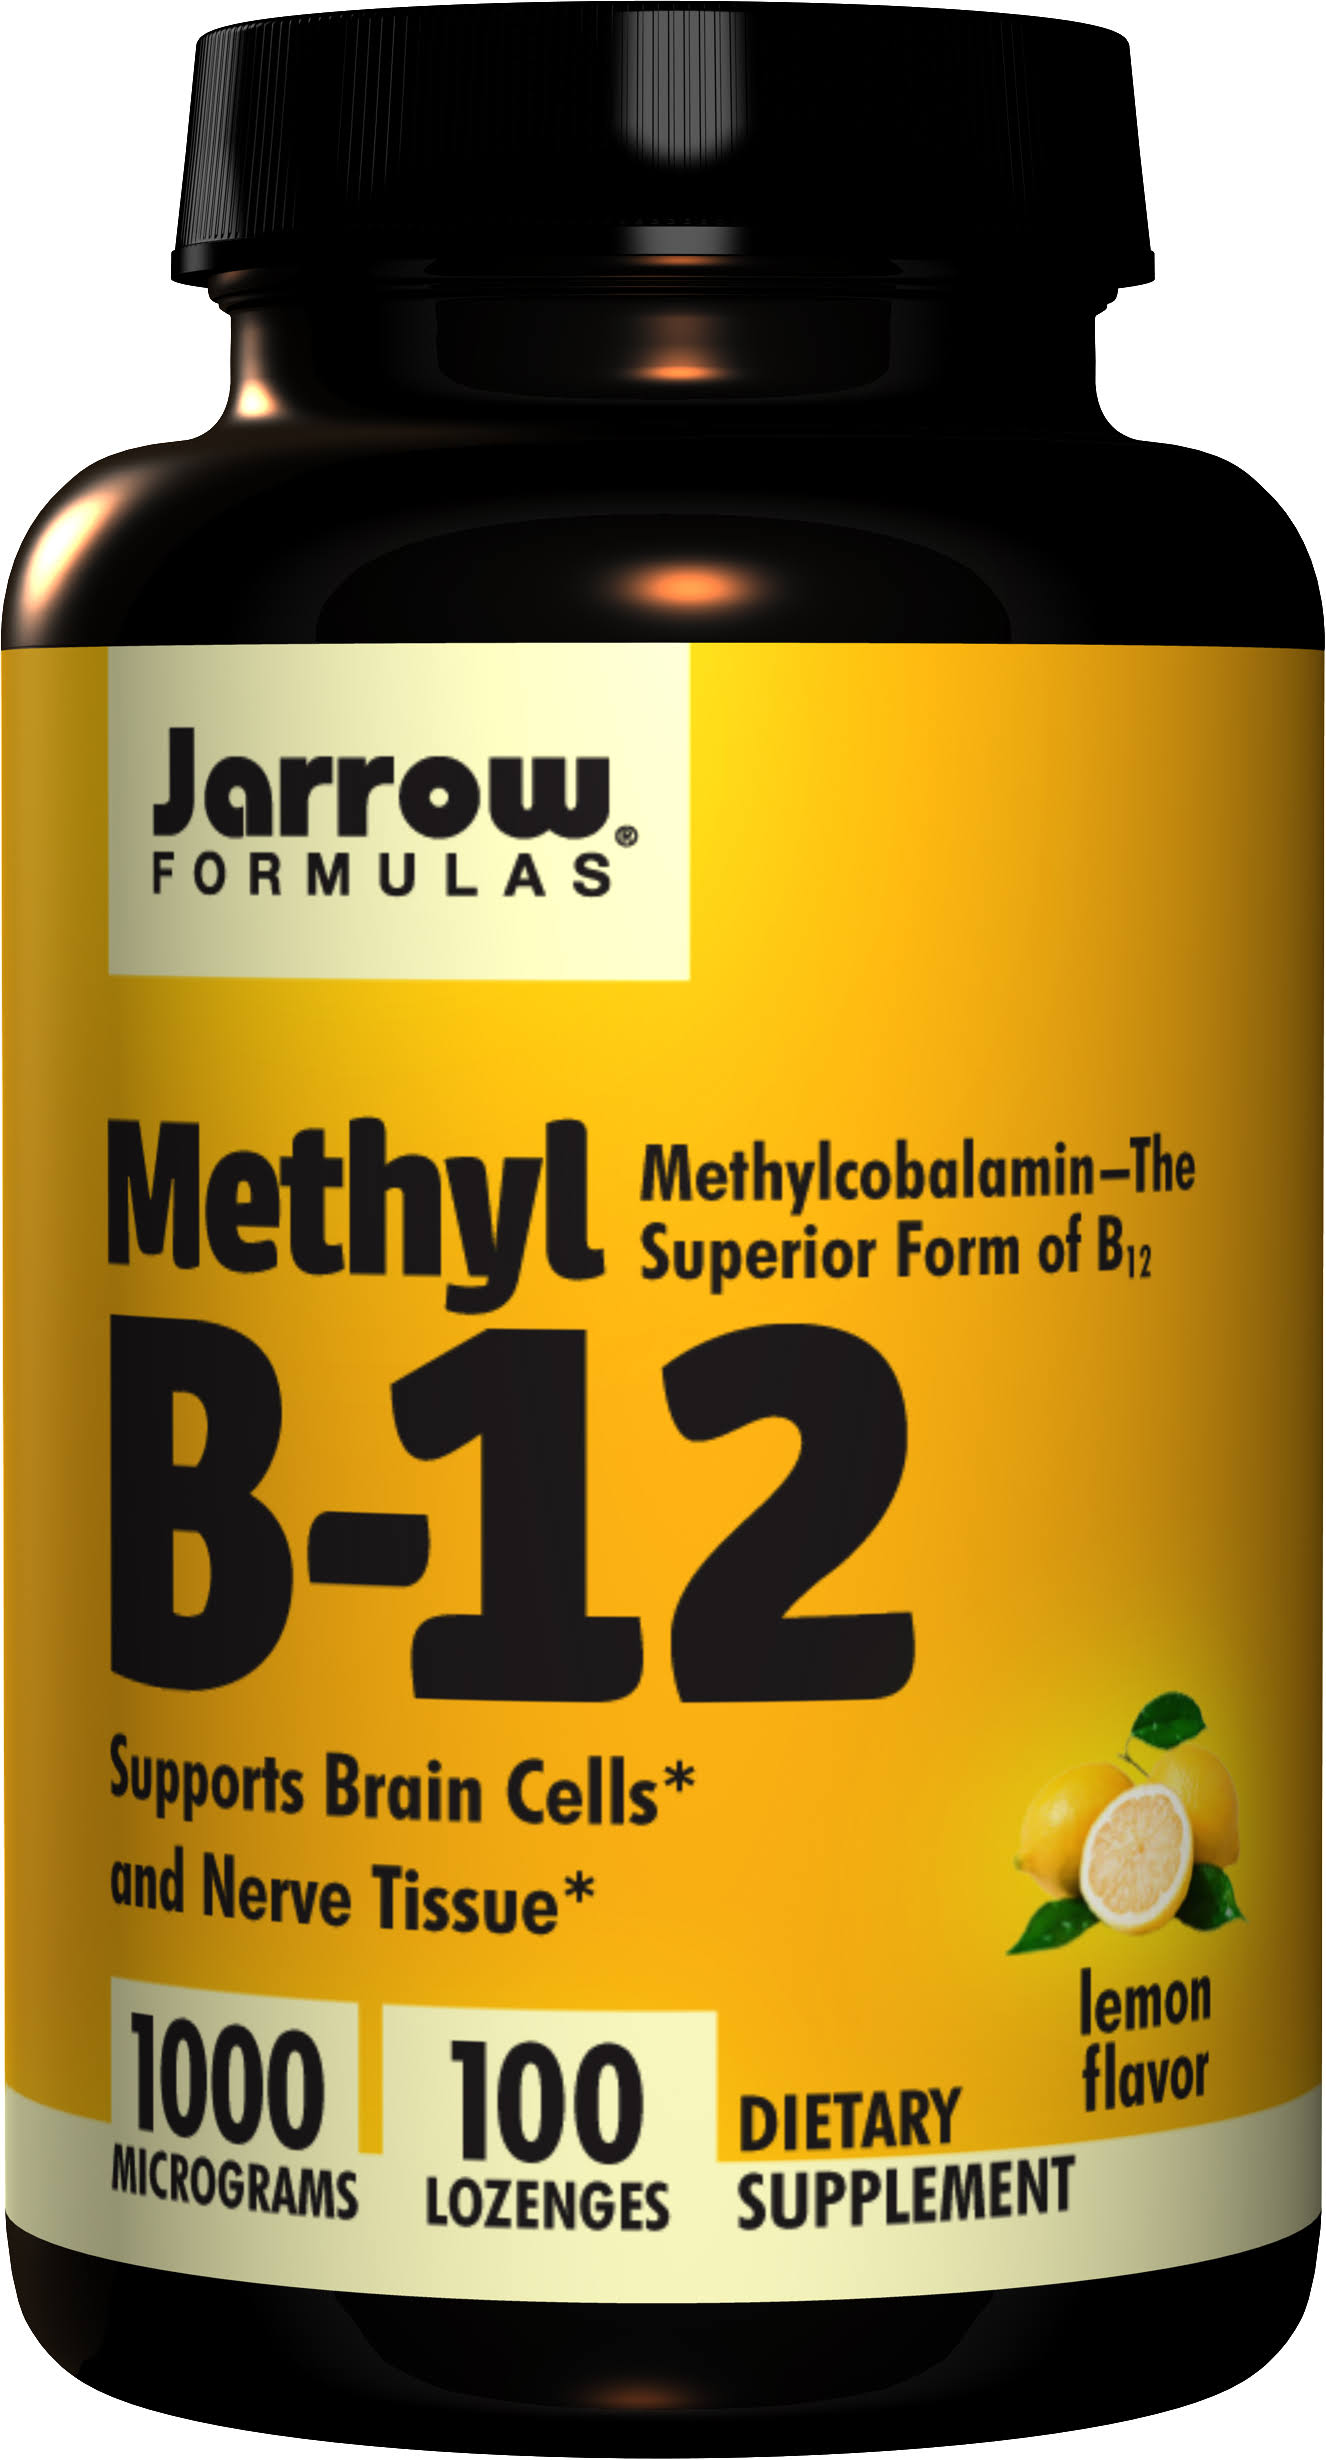 Jarrow Formulas Methyl B-12 Dietary Supplement - 1000mcg, 100 Lozenges